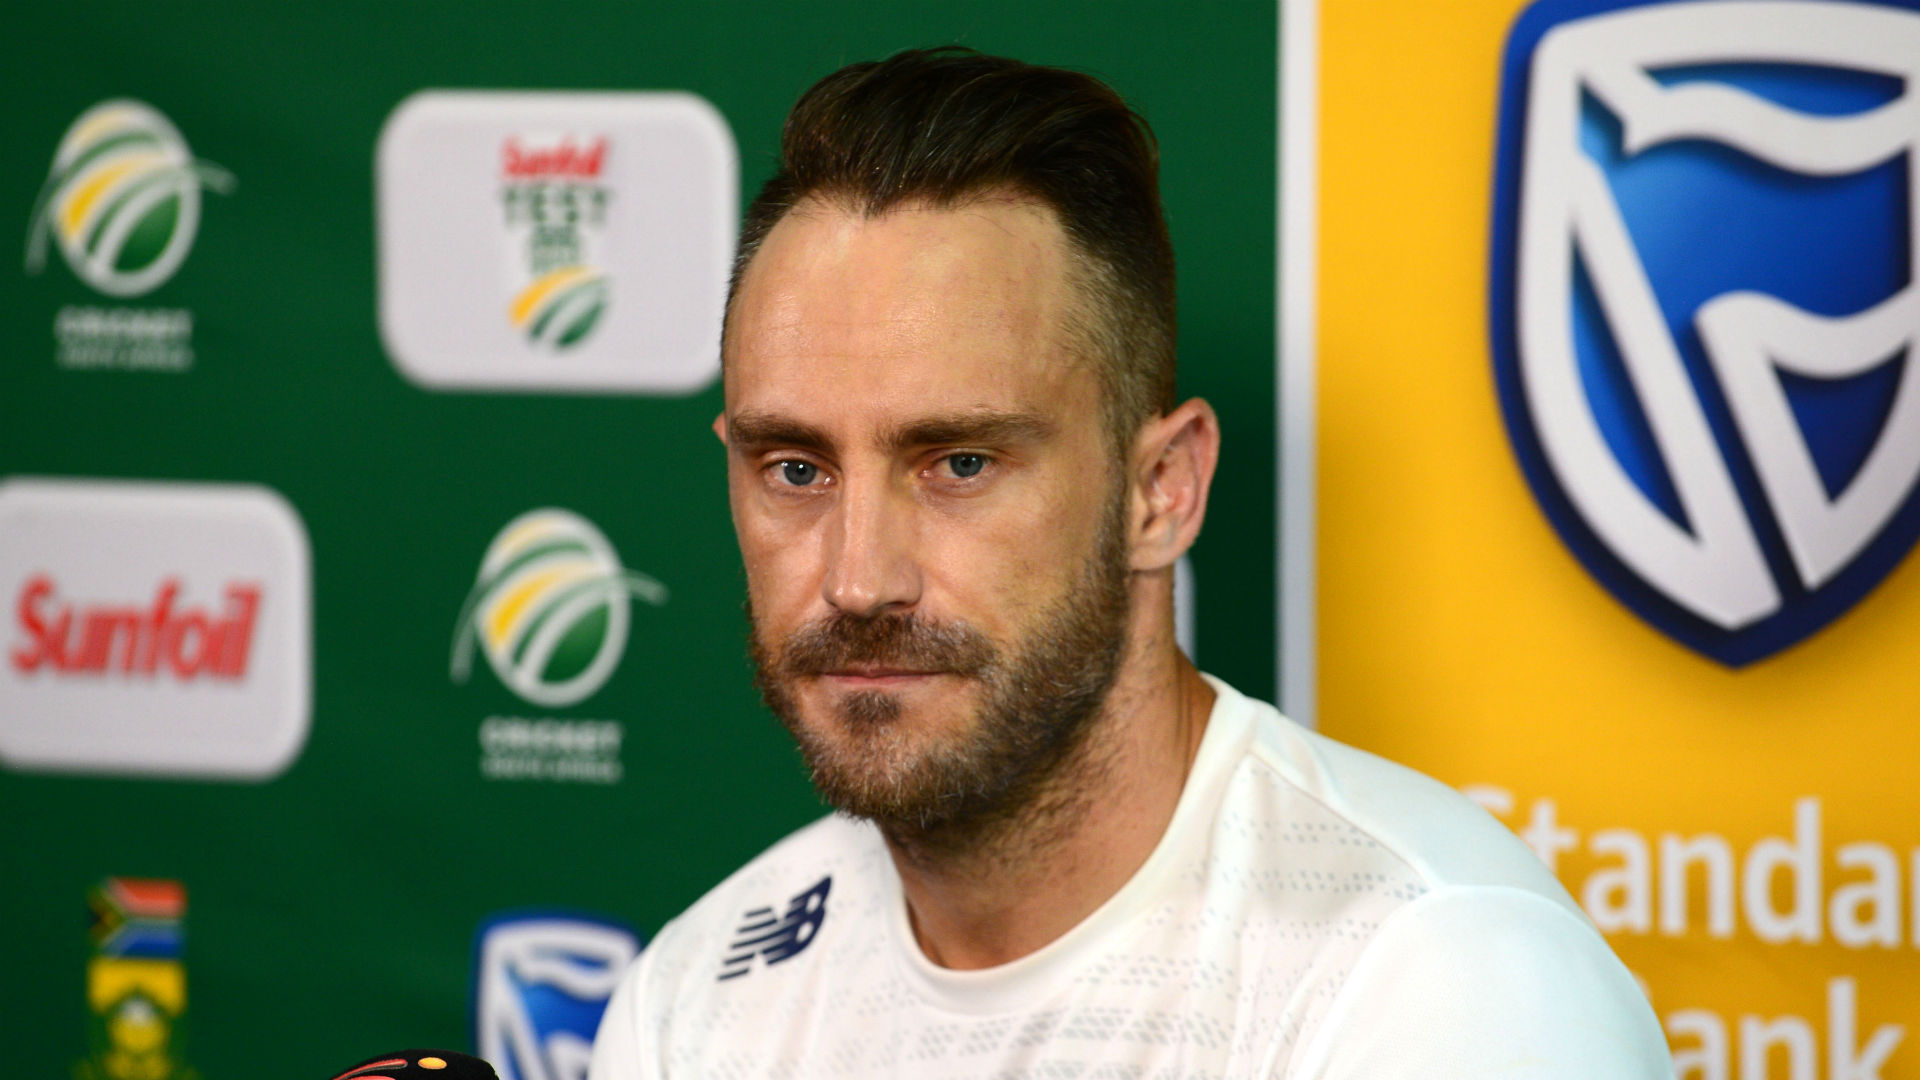 Proteas and Aussies won't stop the verbals in PE